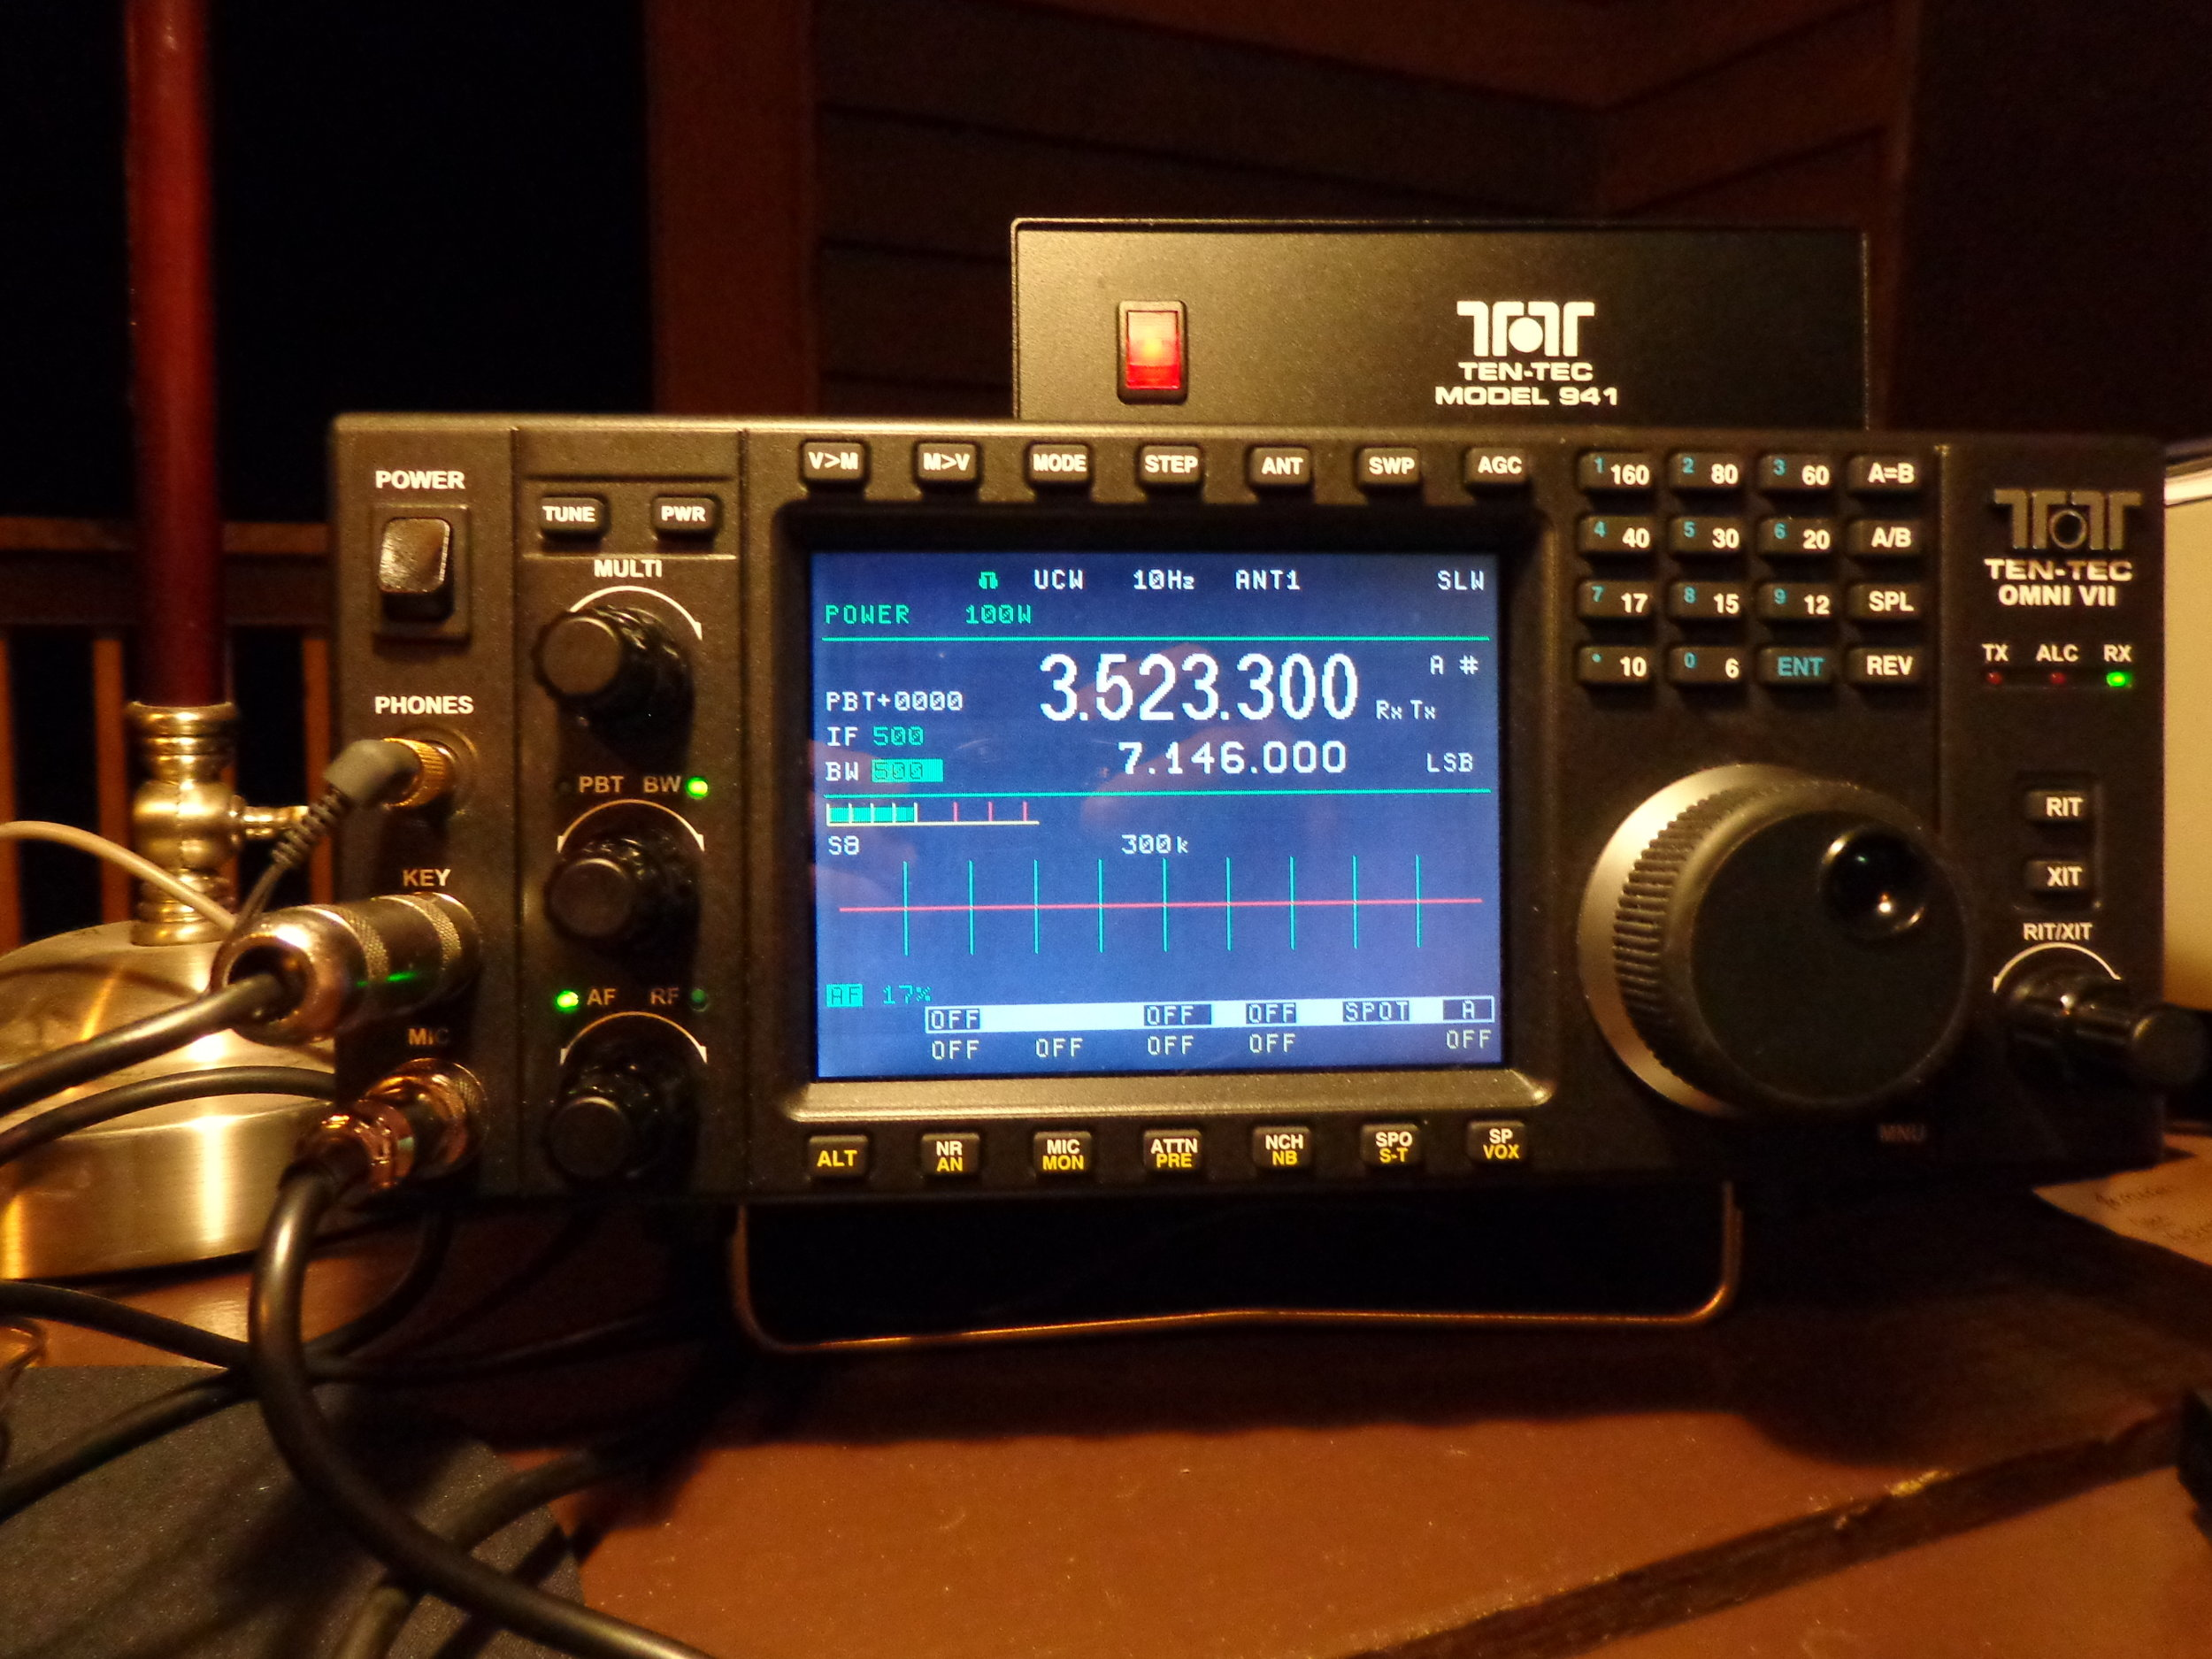 TenTec Omni VII - This is the club's newly acquired TenTec Omni VII.This transceiver was set up to be our main CW operating position and was used by Keith Wishmeier, WA9S, and Dan Caesar, NI9Y. Also operating CW was Bruno Trimboli, NJ9S.